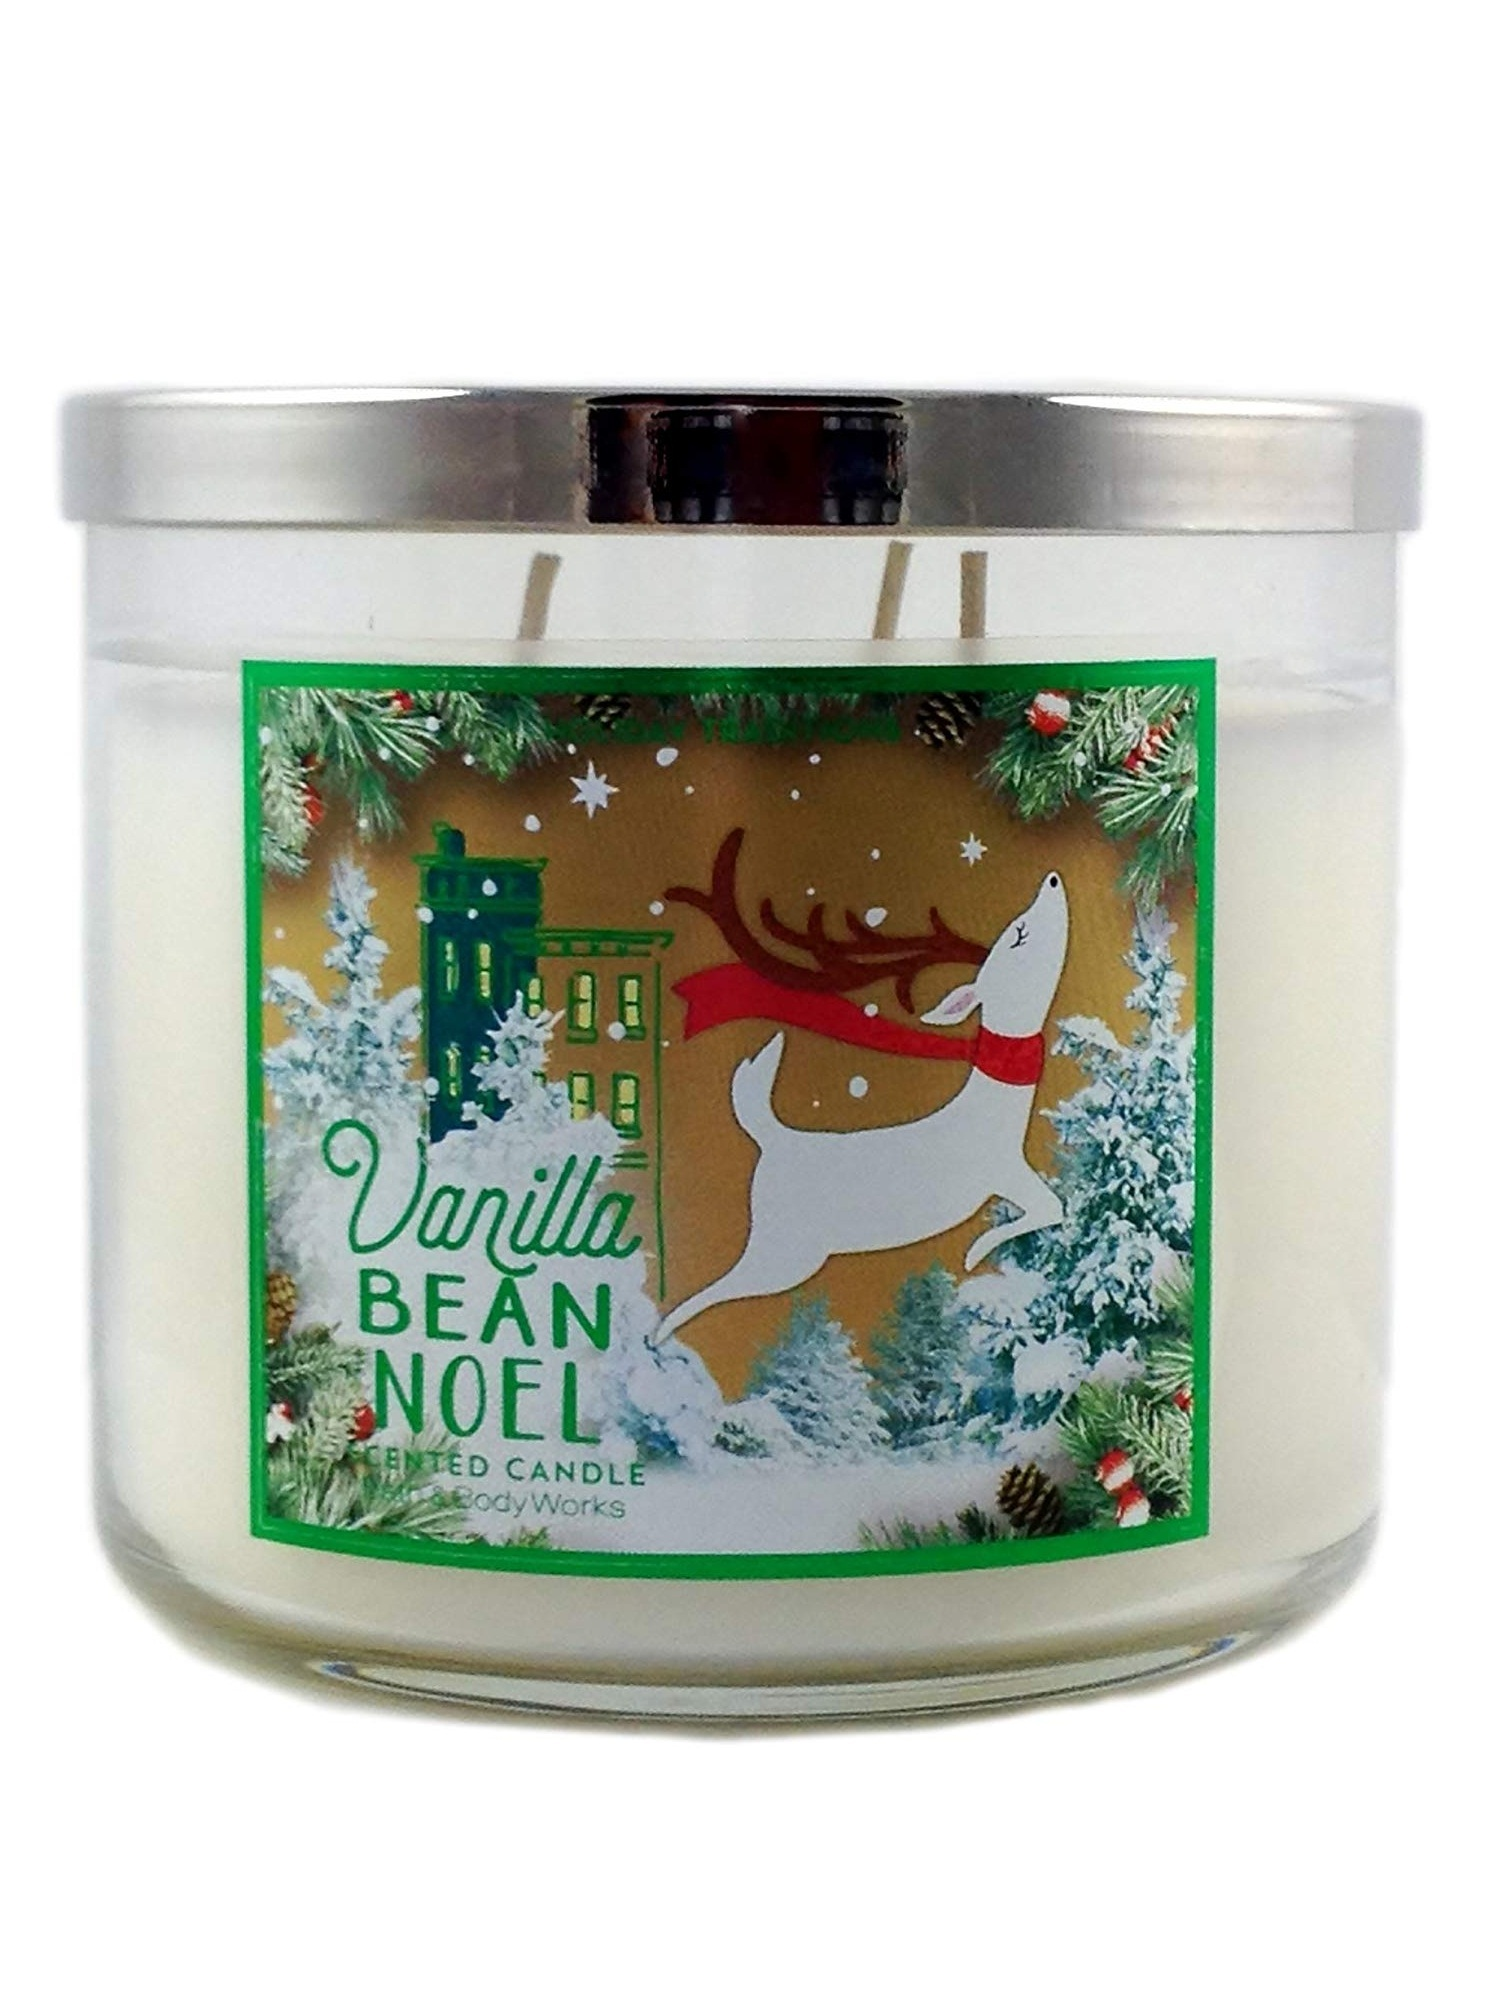 Bath & Body Works 3-Wick Candle - Vanilla Bean Noel.jpg